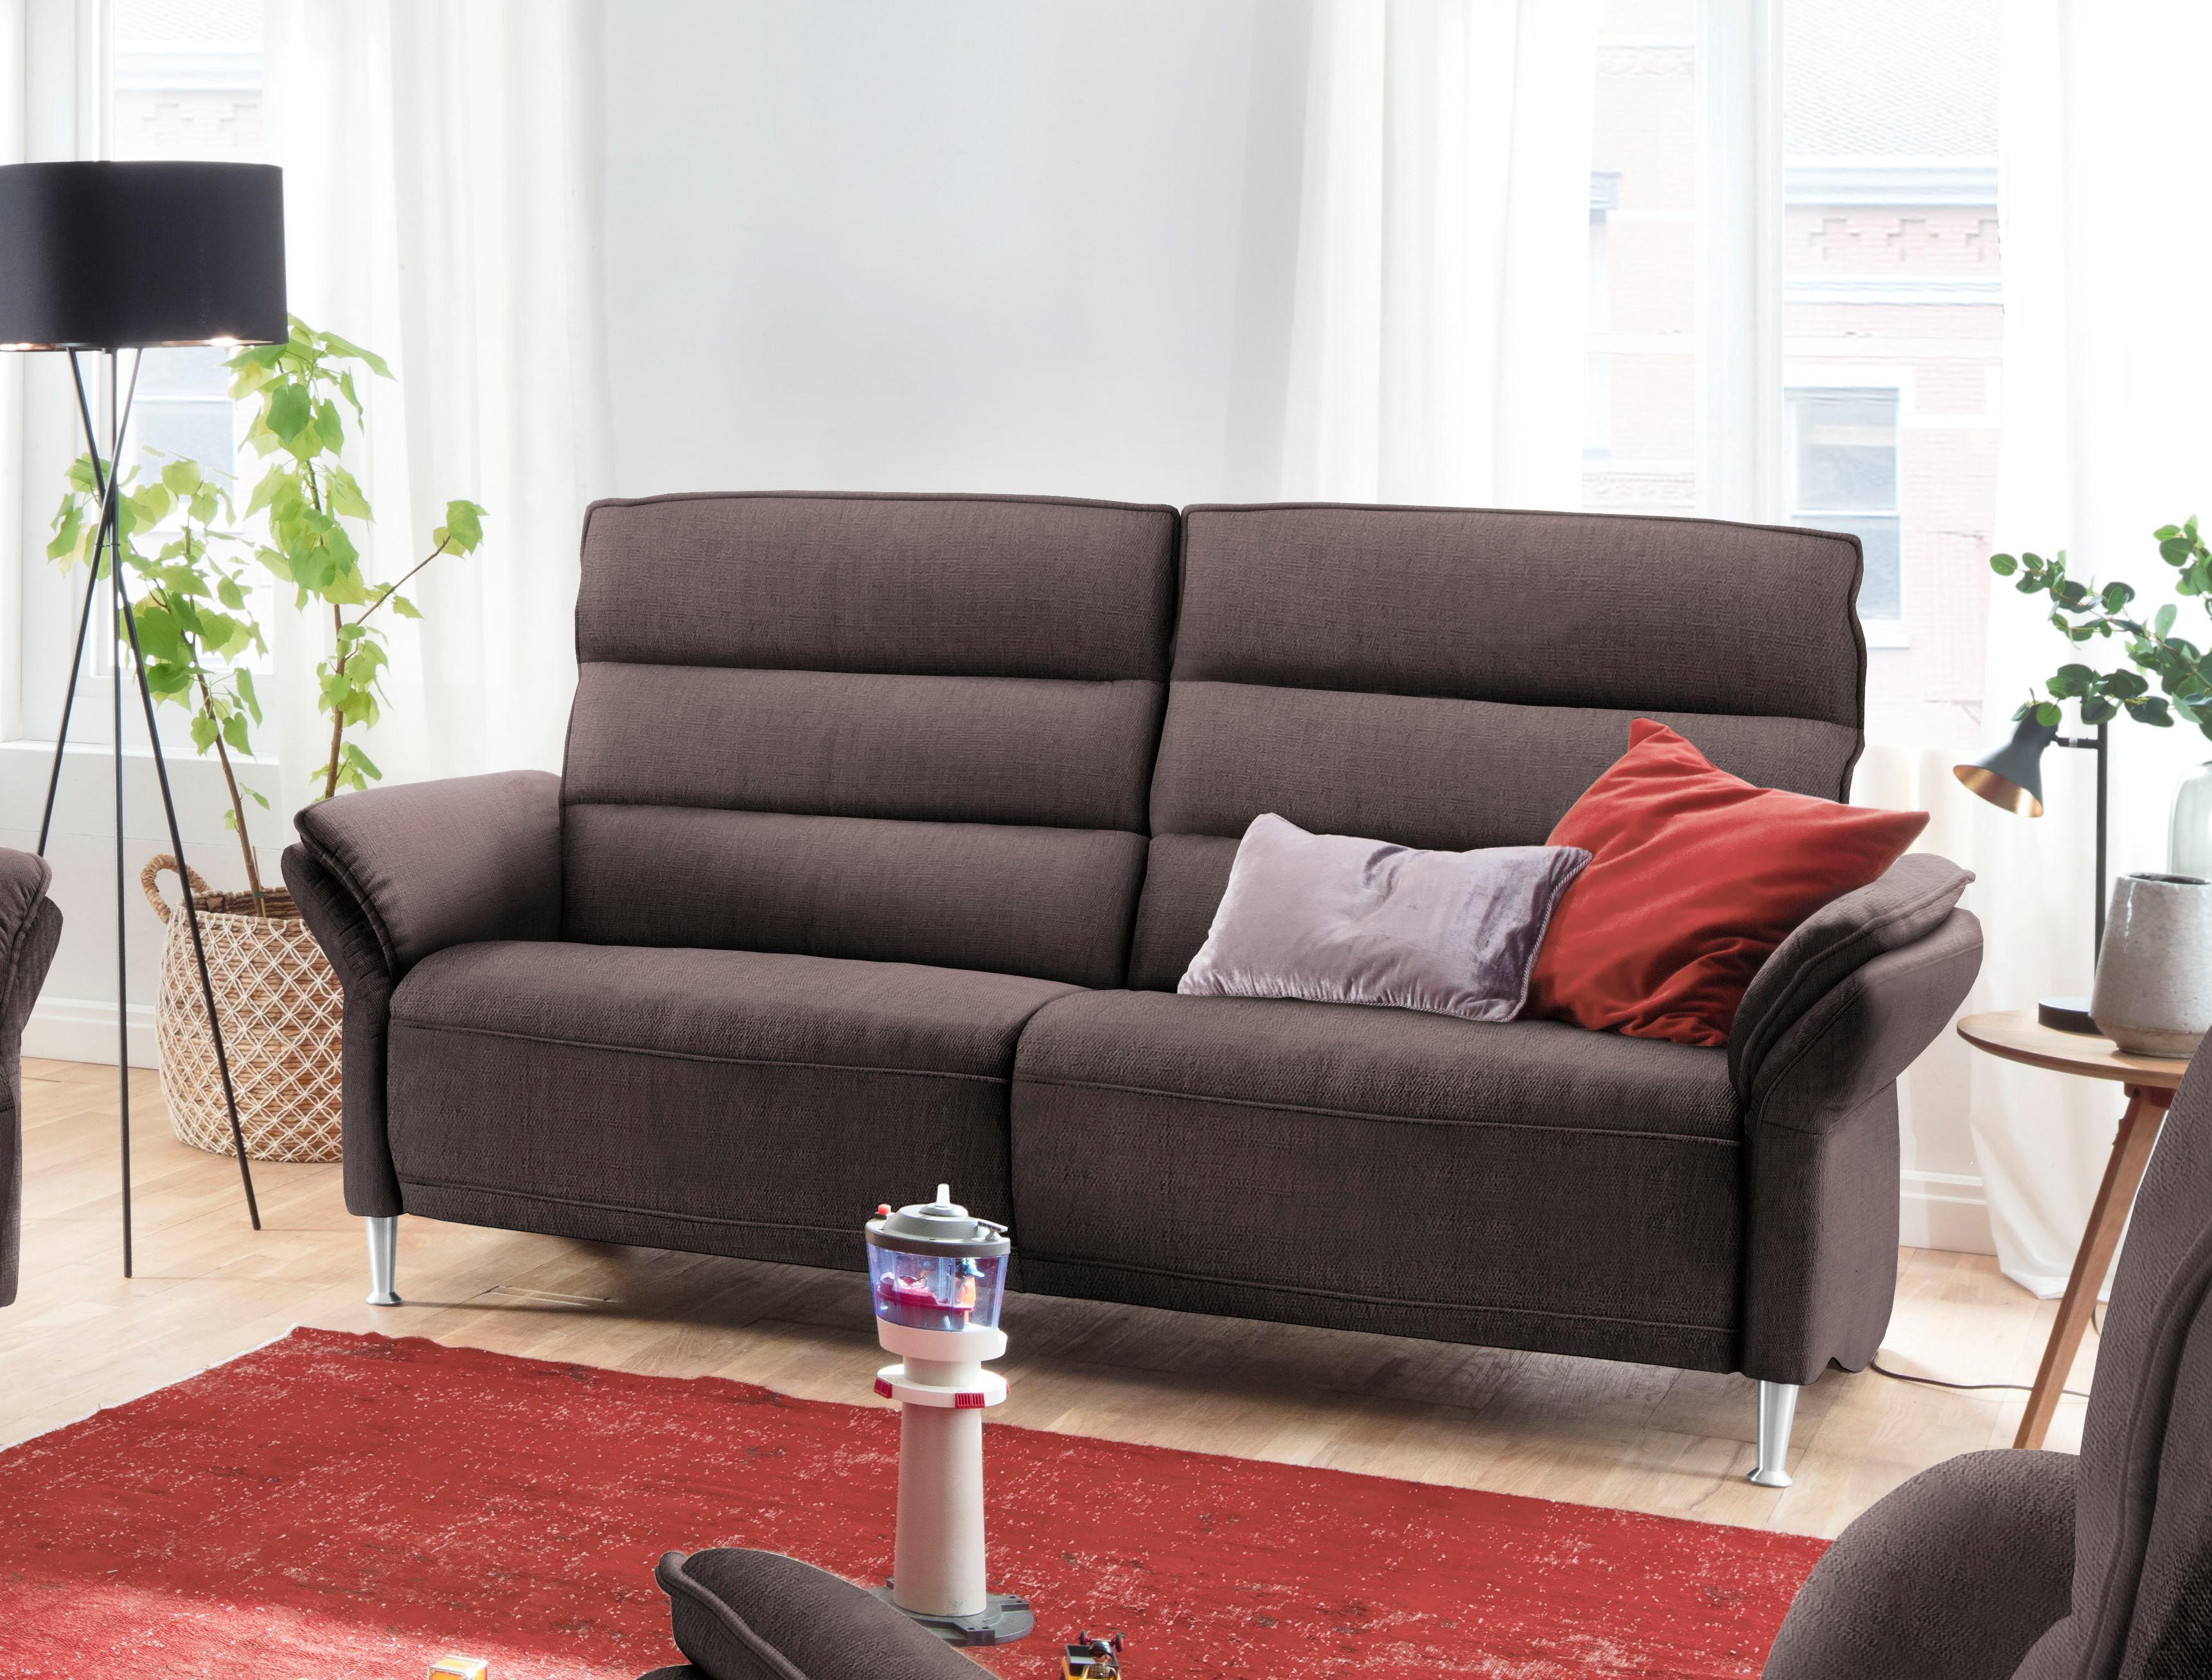 Places Of Style 3-Sitzer Dover wahlweise mit Relaxfunktion links oder rechts | Wohnzimmer > Sofas & Couches > 2 & 3 Sitzer Sofas | Leder - Microfaser - Stoff | Places Of Style